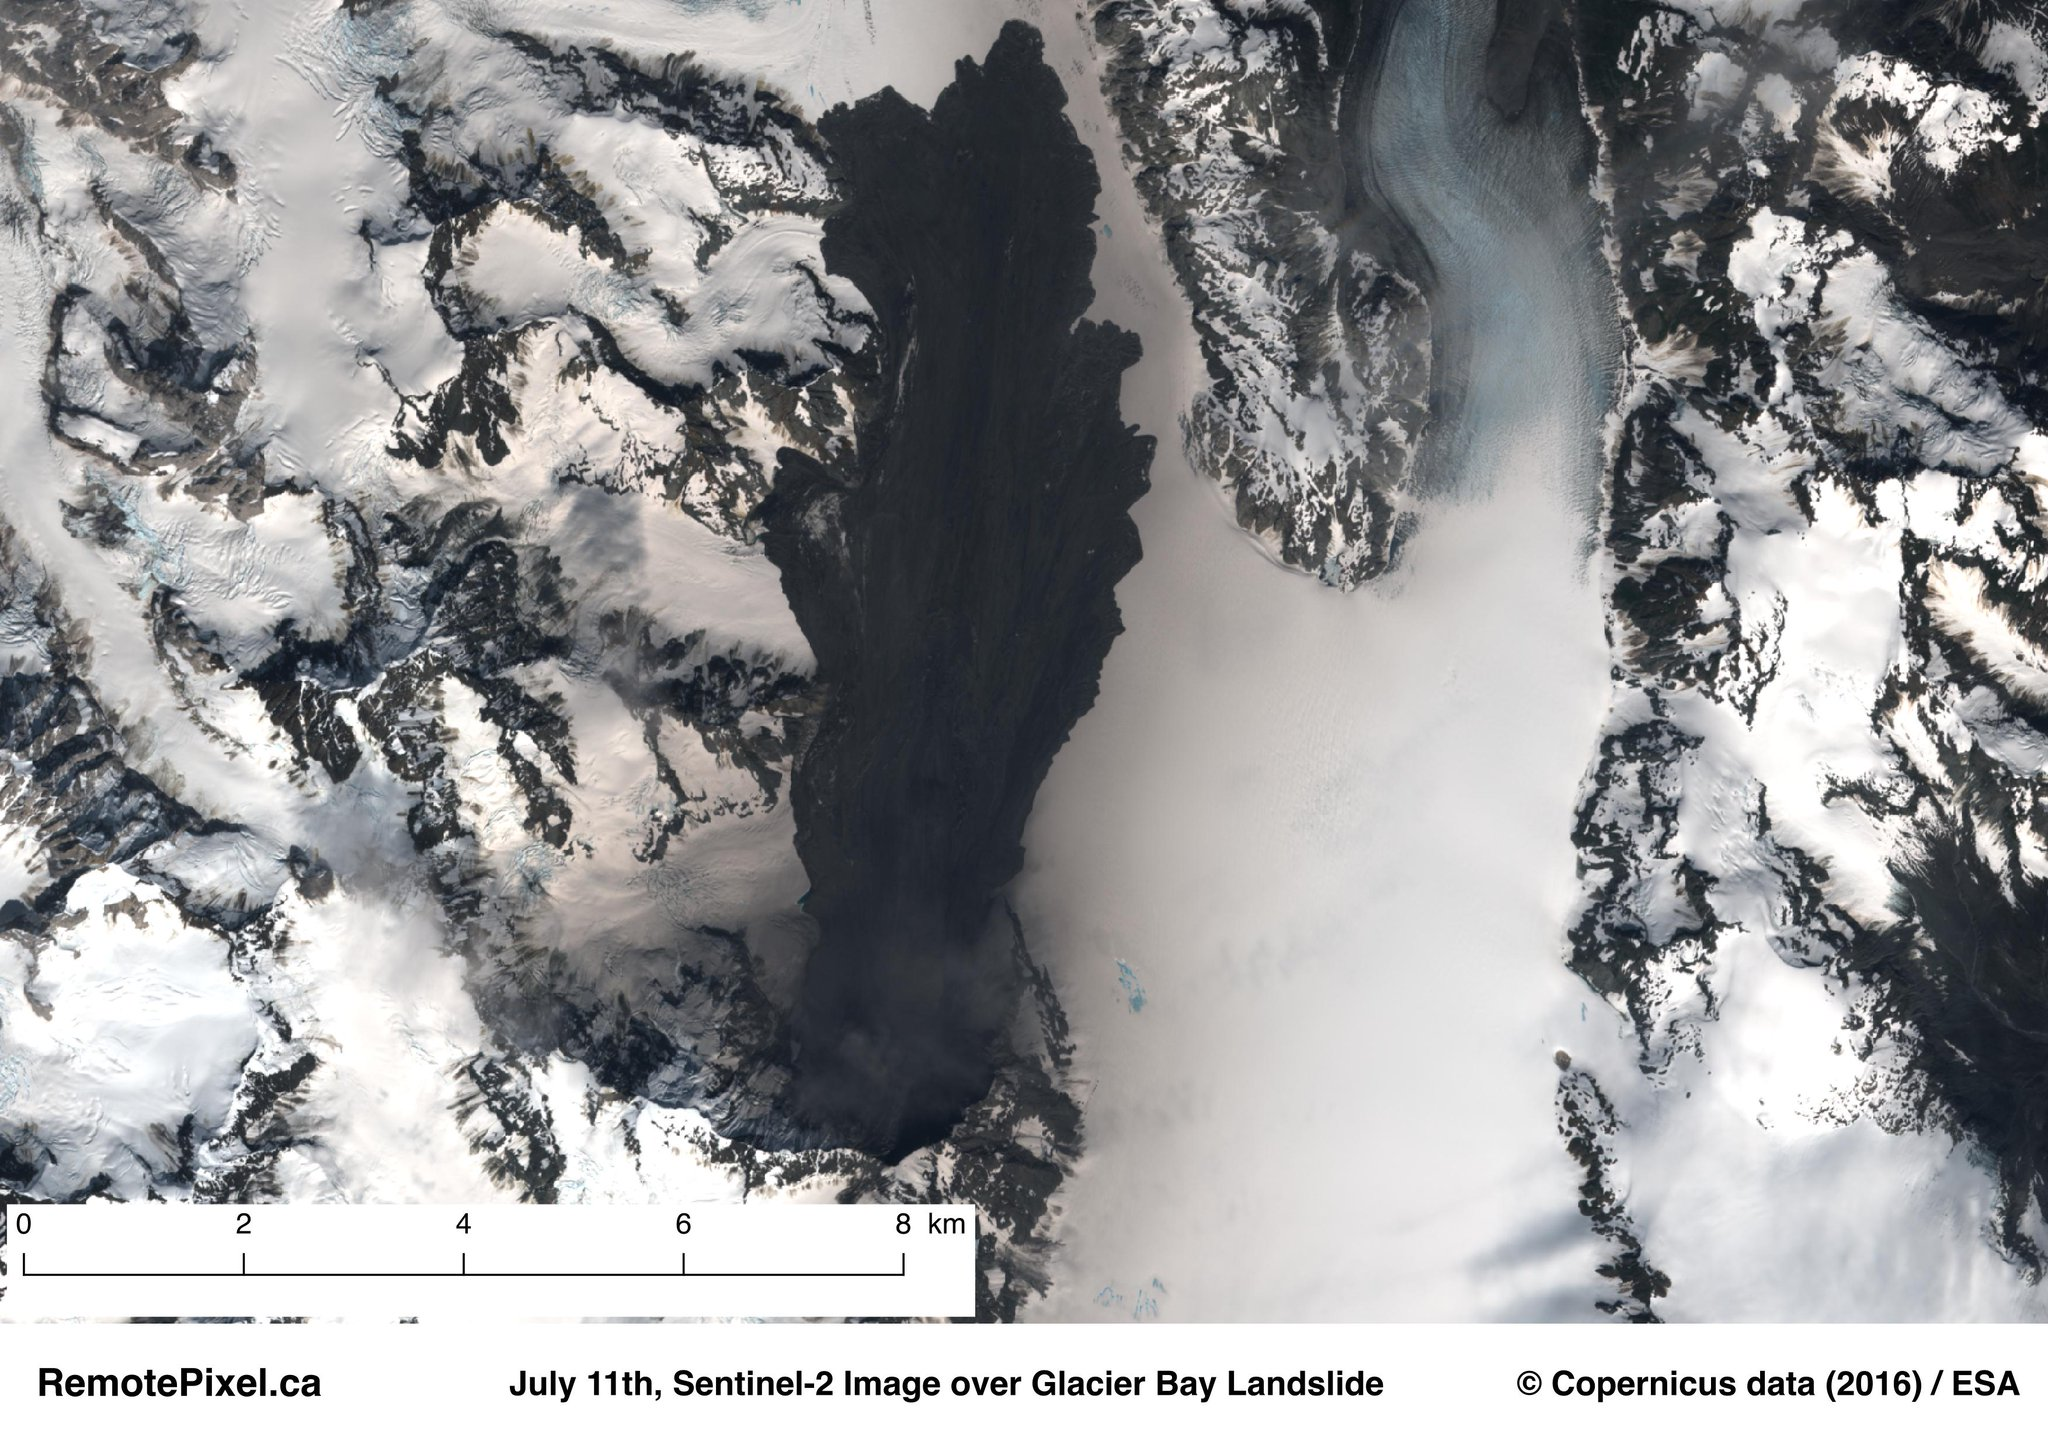 Mapping the Glacier Bay landslide using Sentinel-1 and